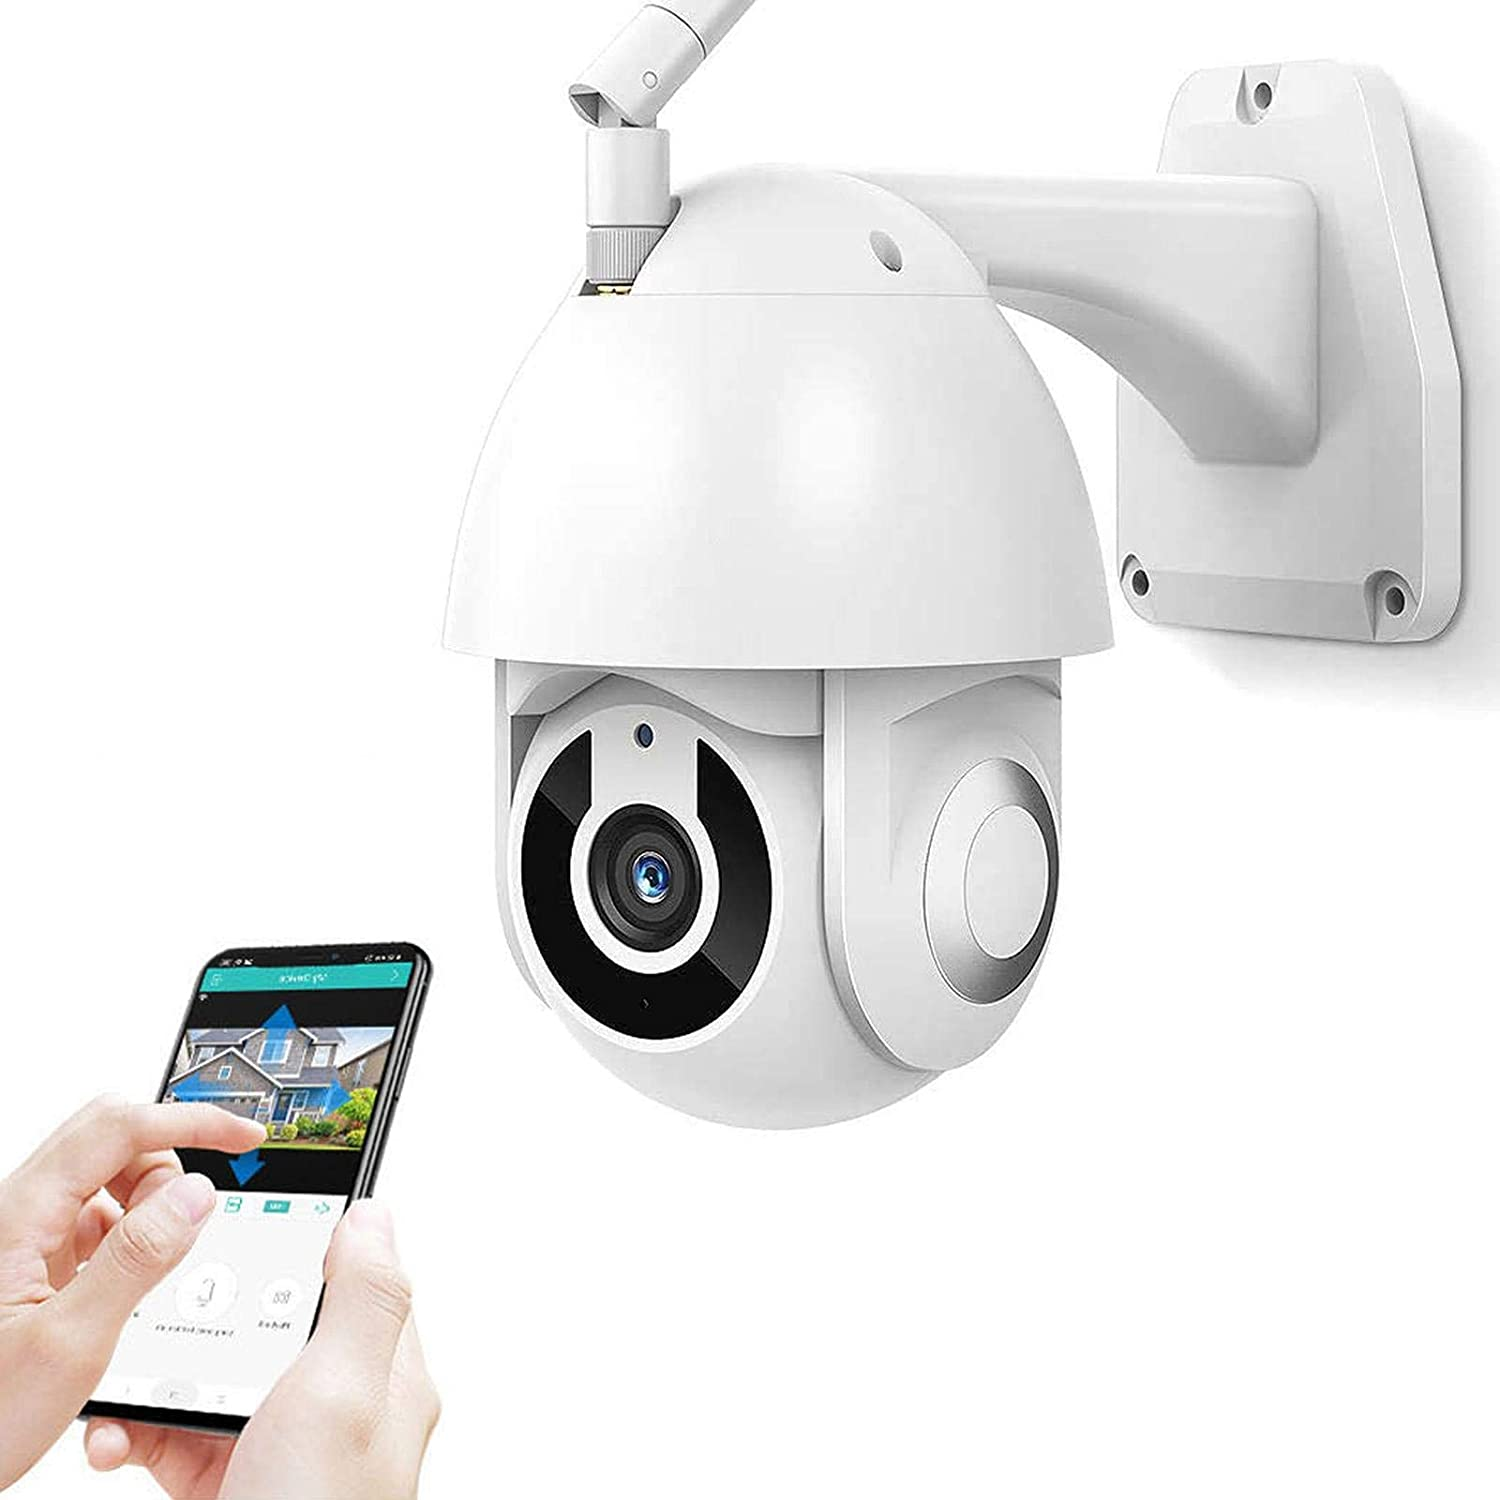 Outdoor Surveillance Boston Mall Camera OFFicial mail order 1080P 360°pa Security HD WiFi